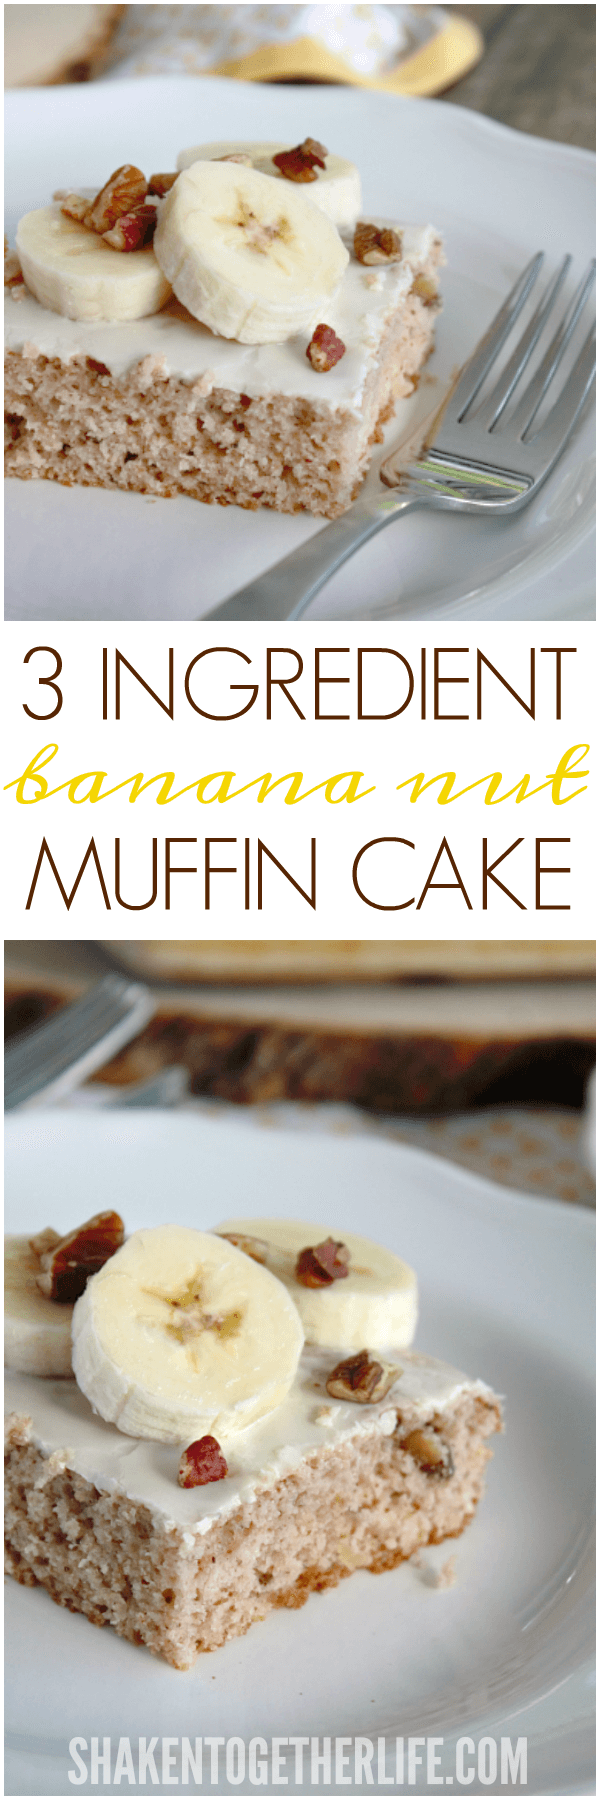 Need an easy breakfast recipe? Try this 3 Ingredient Banana Nut Muffin Cake! Just mix, bake and frost!